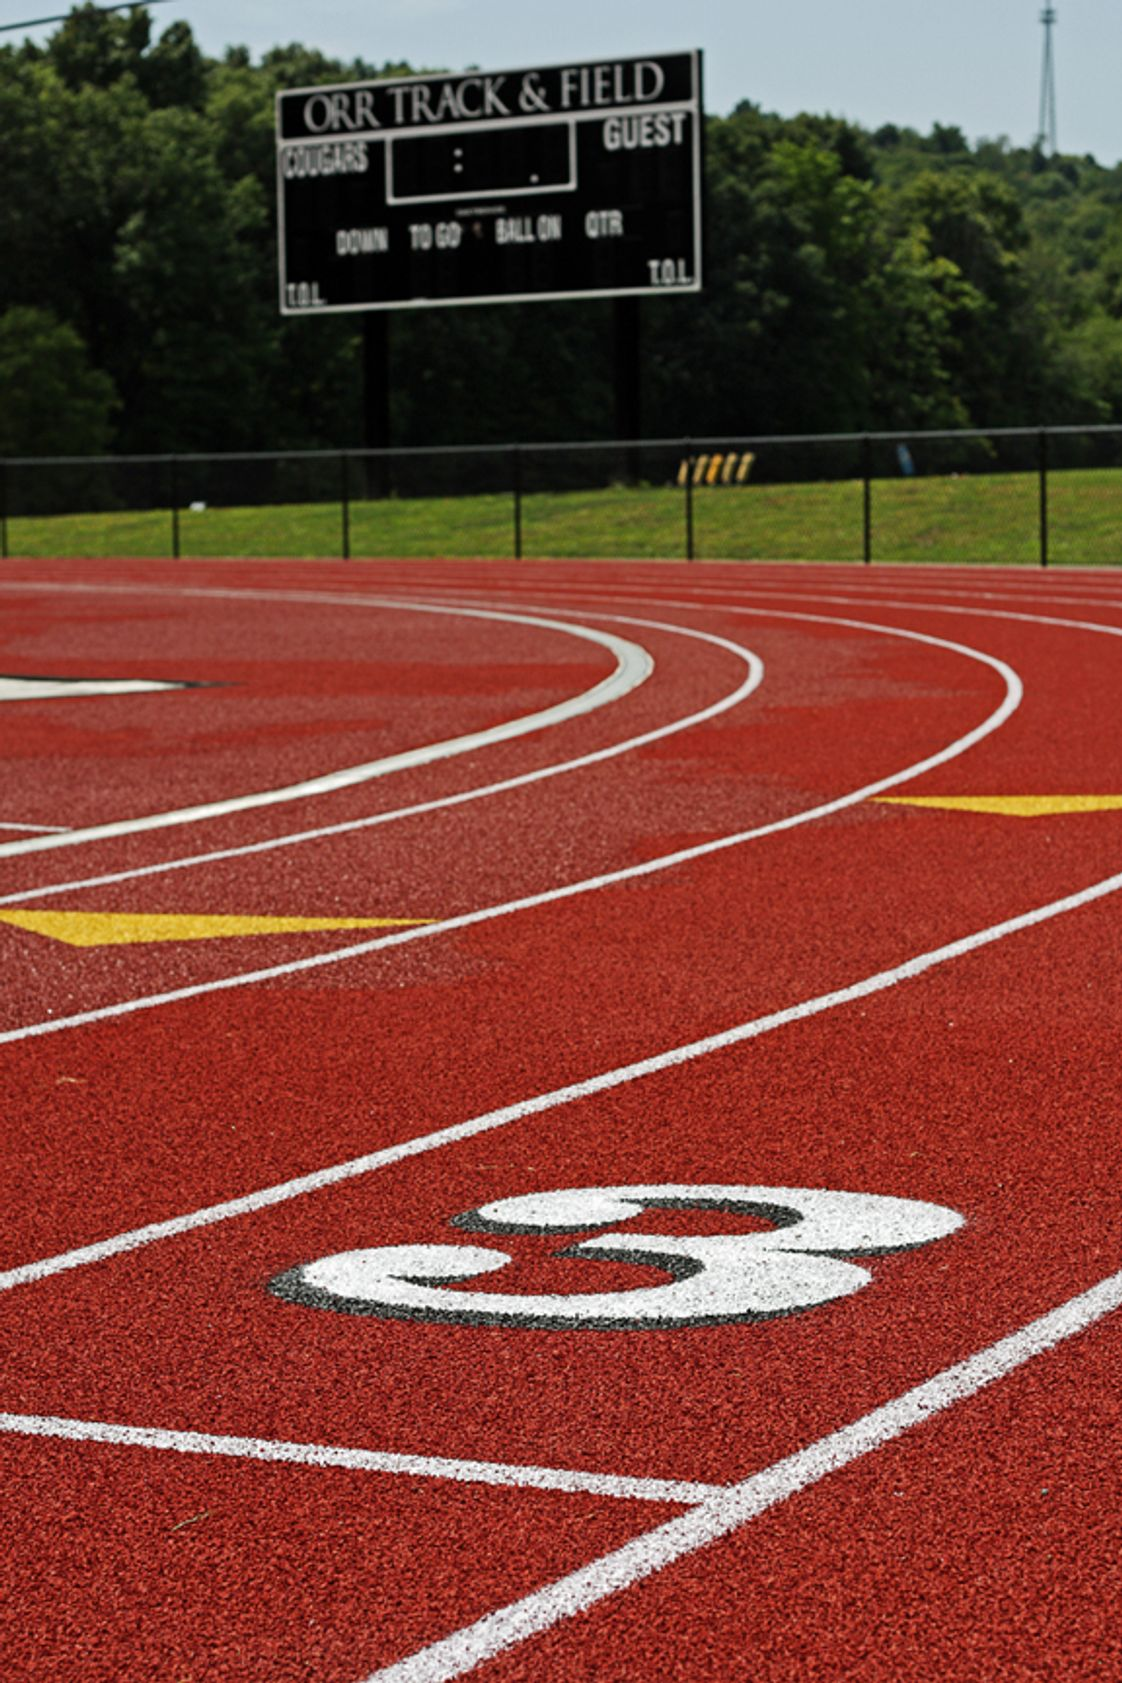 The Kiski School Photo #1 - State of the art track at Orr Track and Field